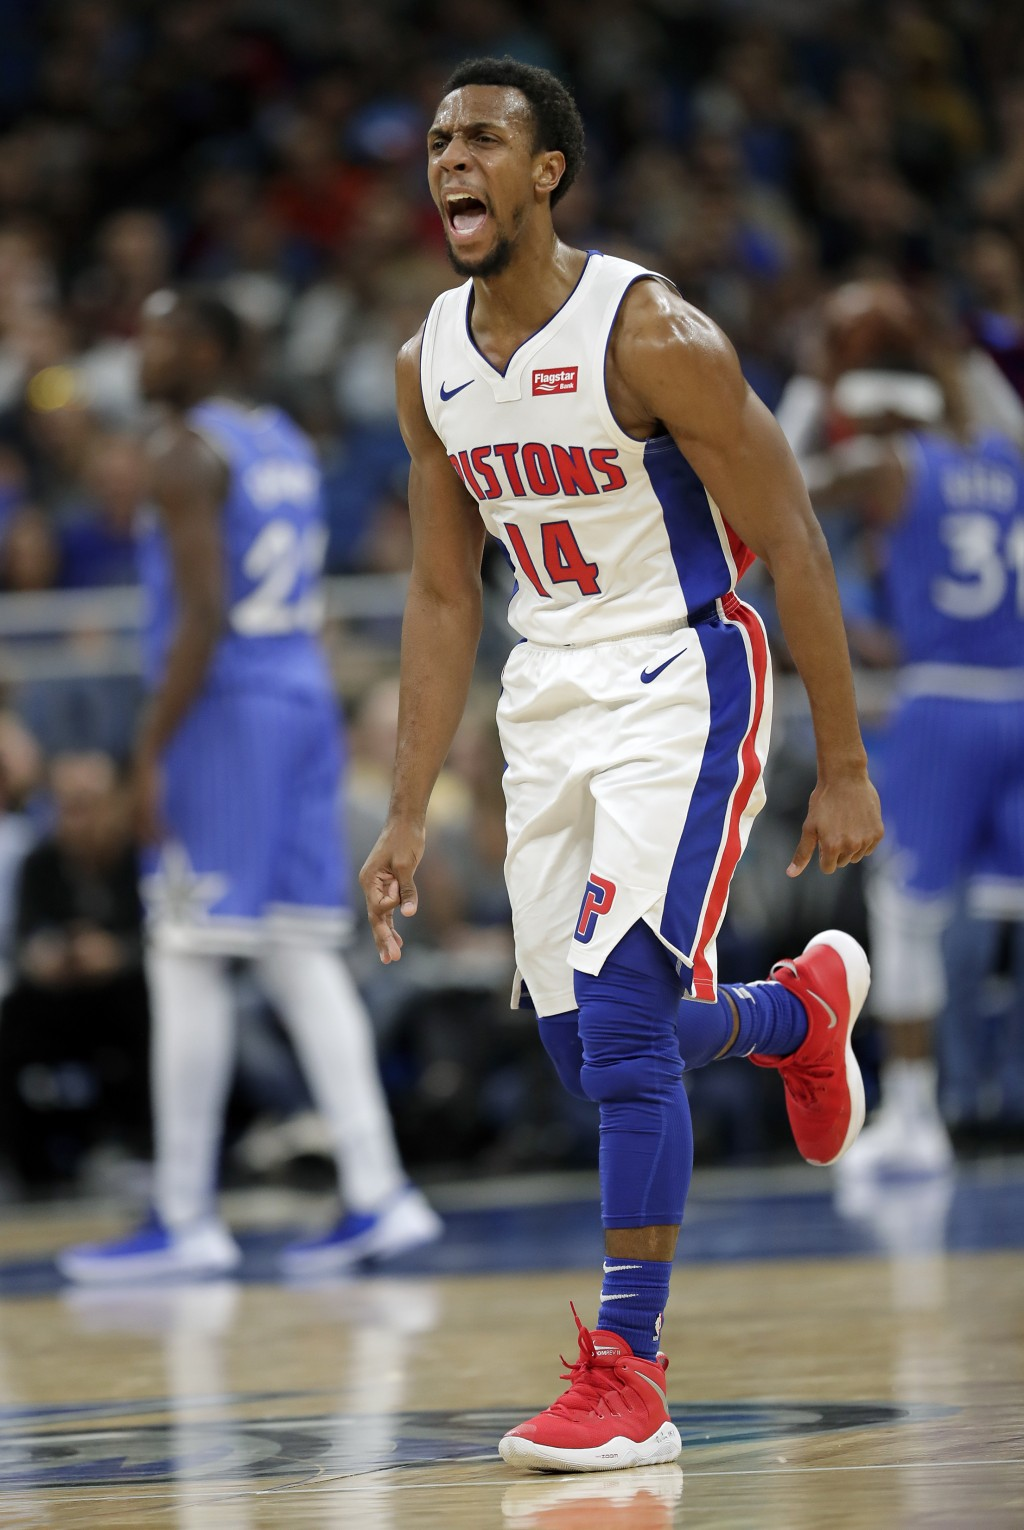 Detroit Pistons' Ish Smith celebrates after a teammate made a 3-point shot against the Orlando Magic during the second half of an NBA basketball game,